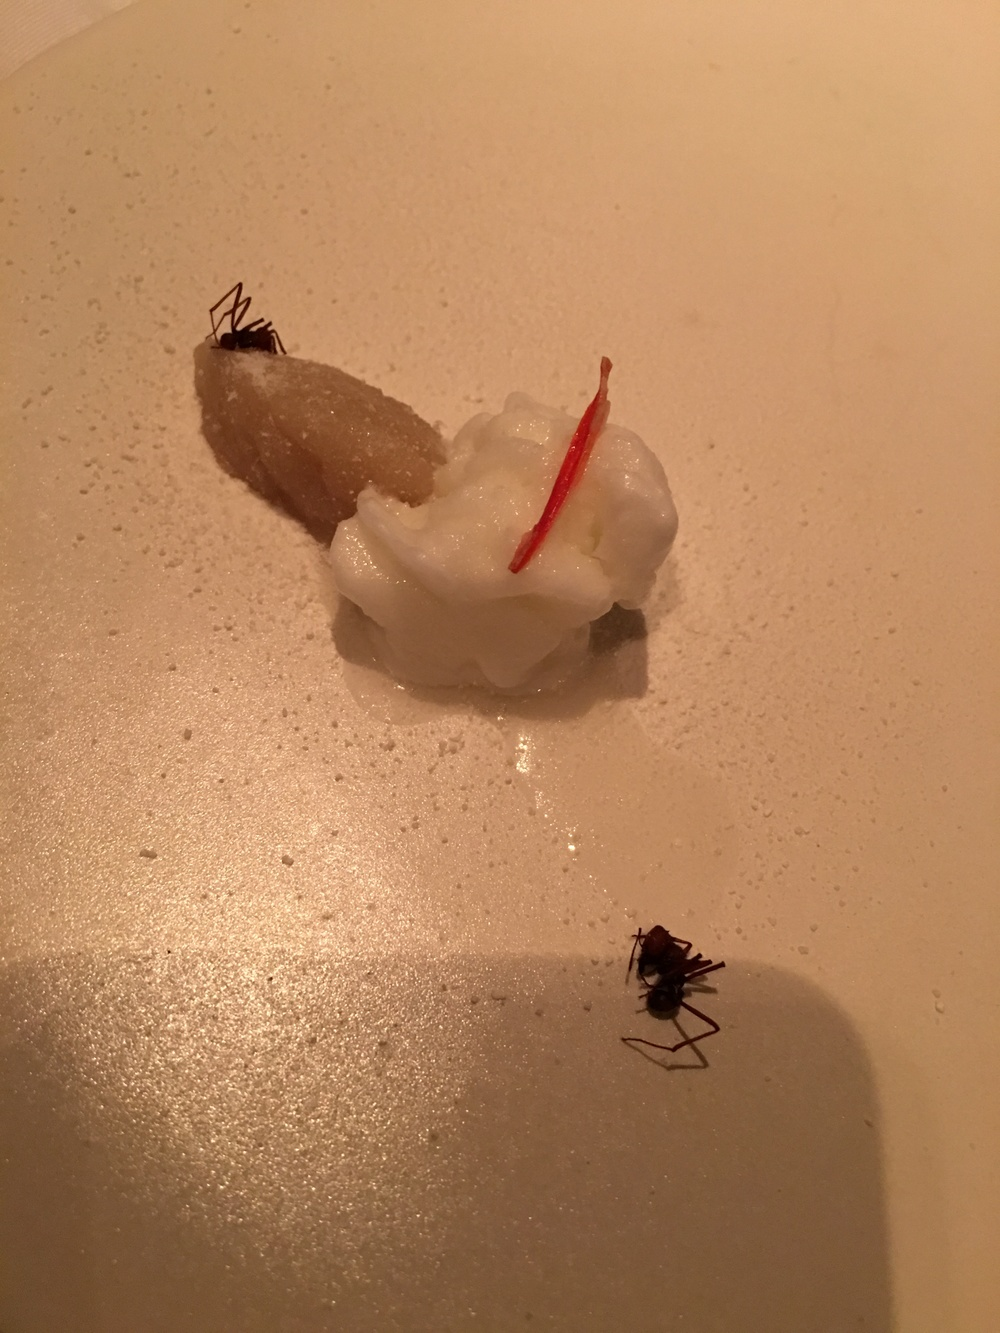 Our dessert featuring ants at DOM